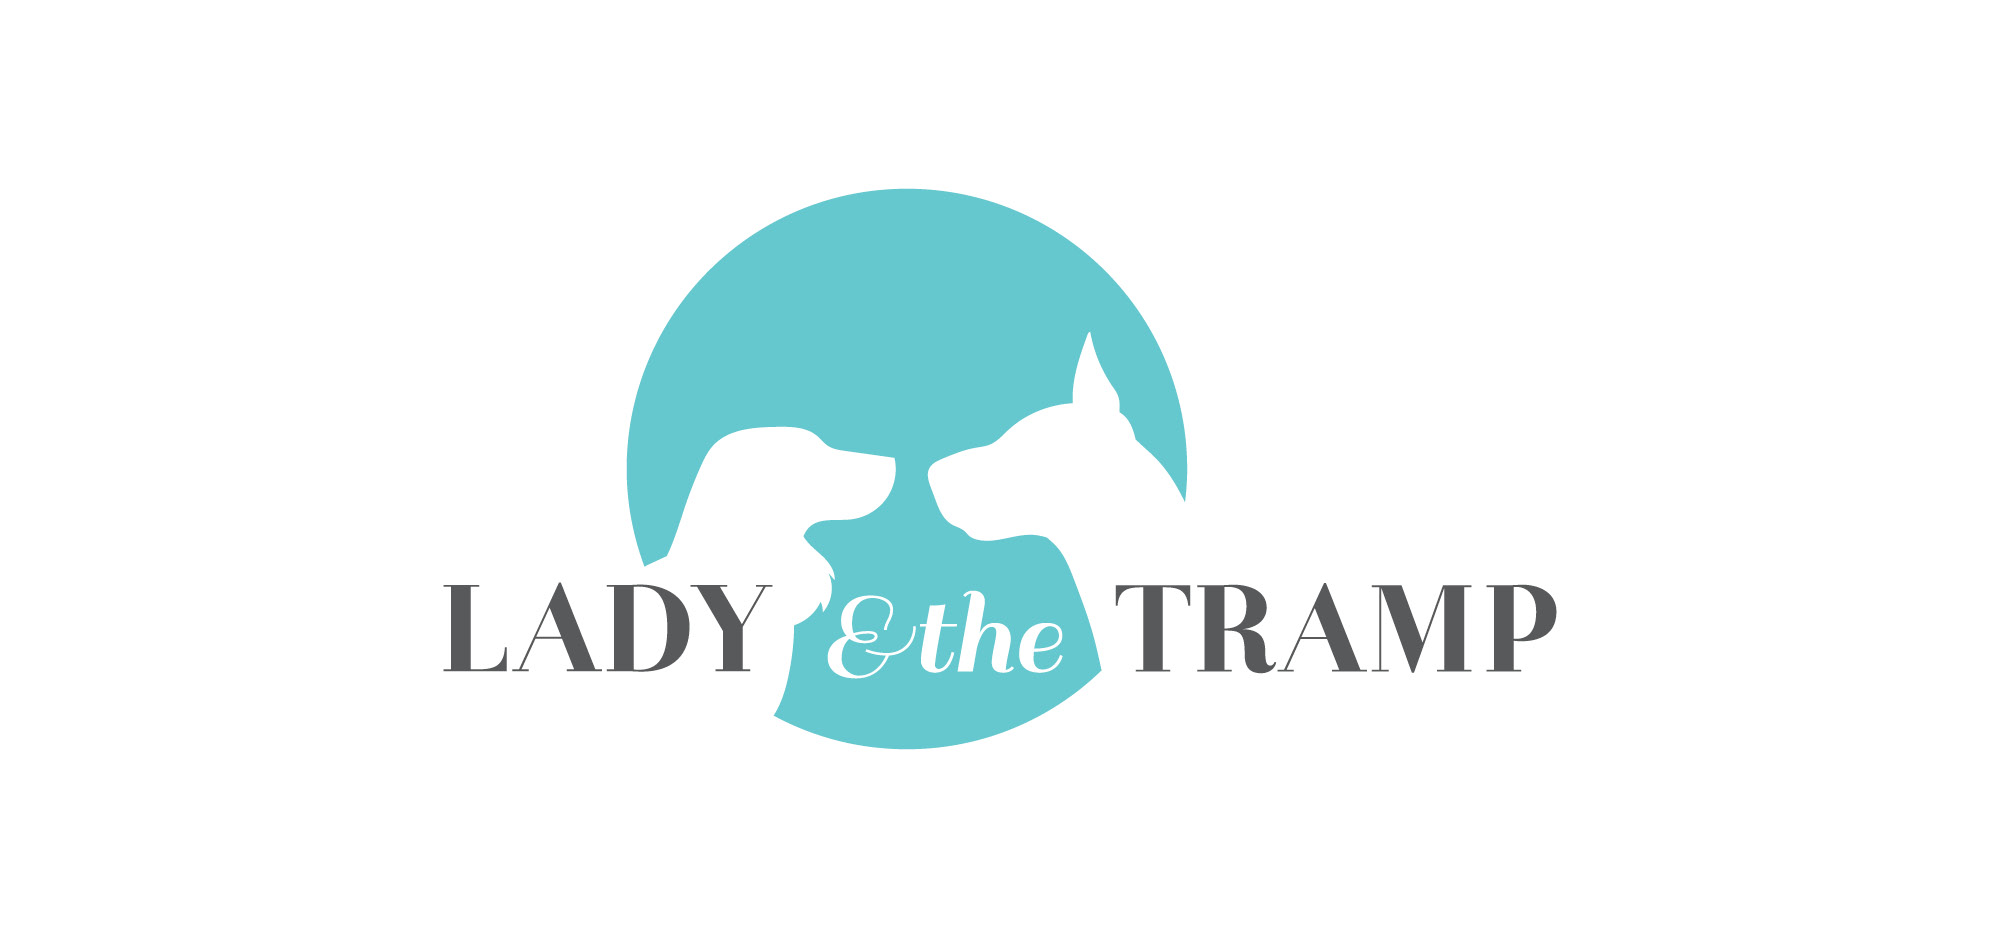 Lady & the Tramp logo design